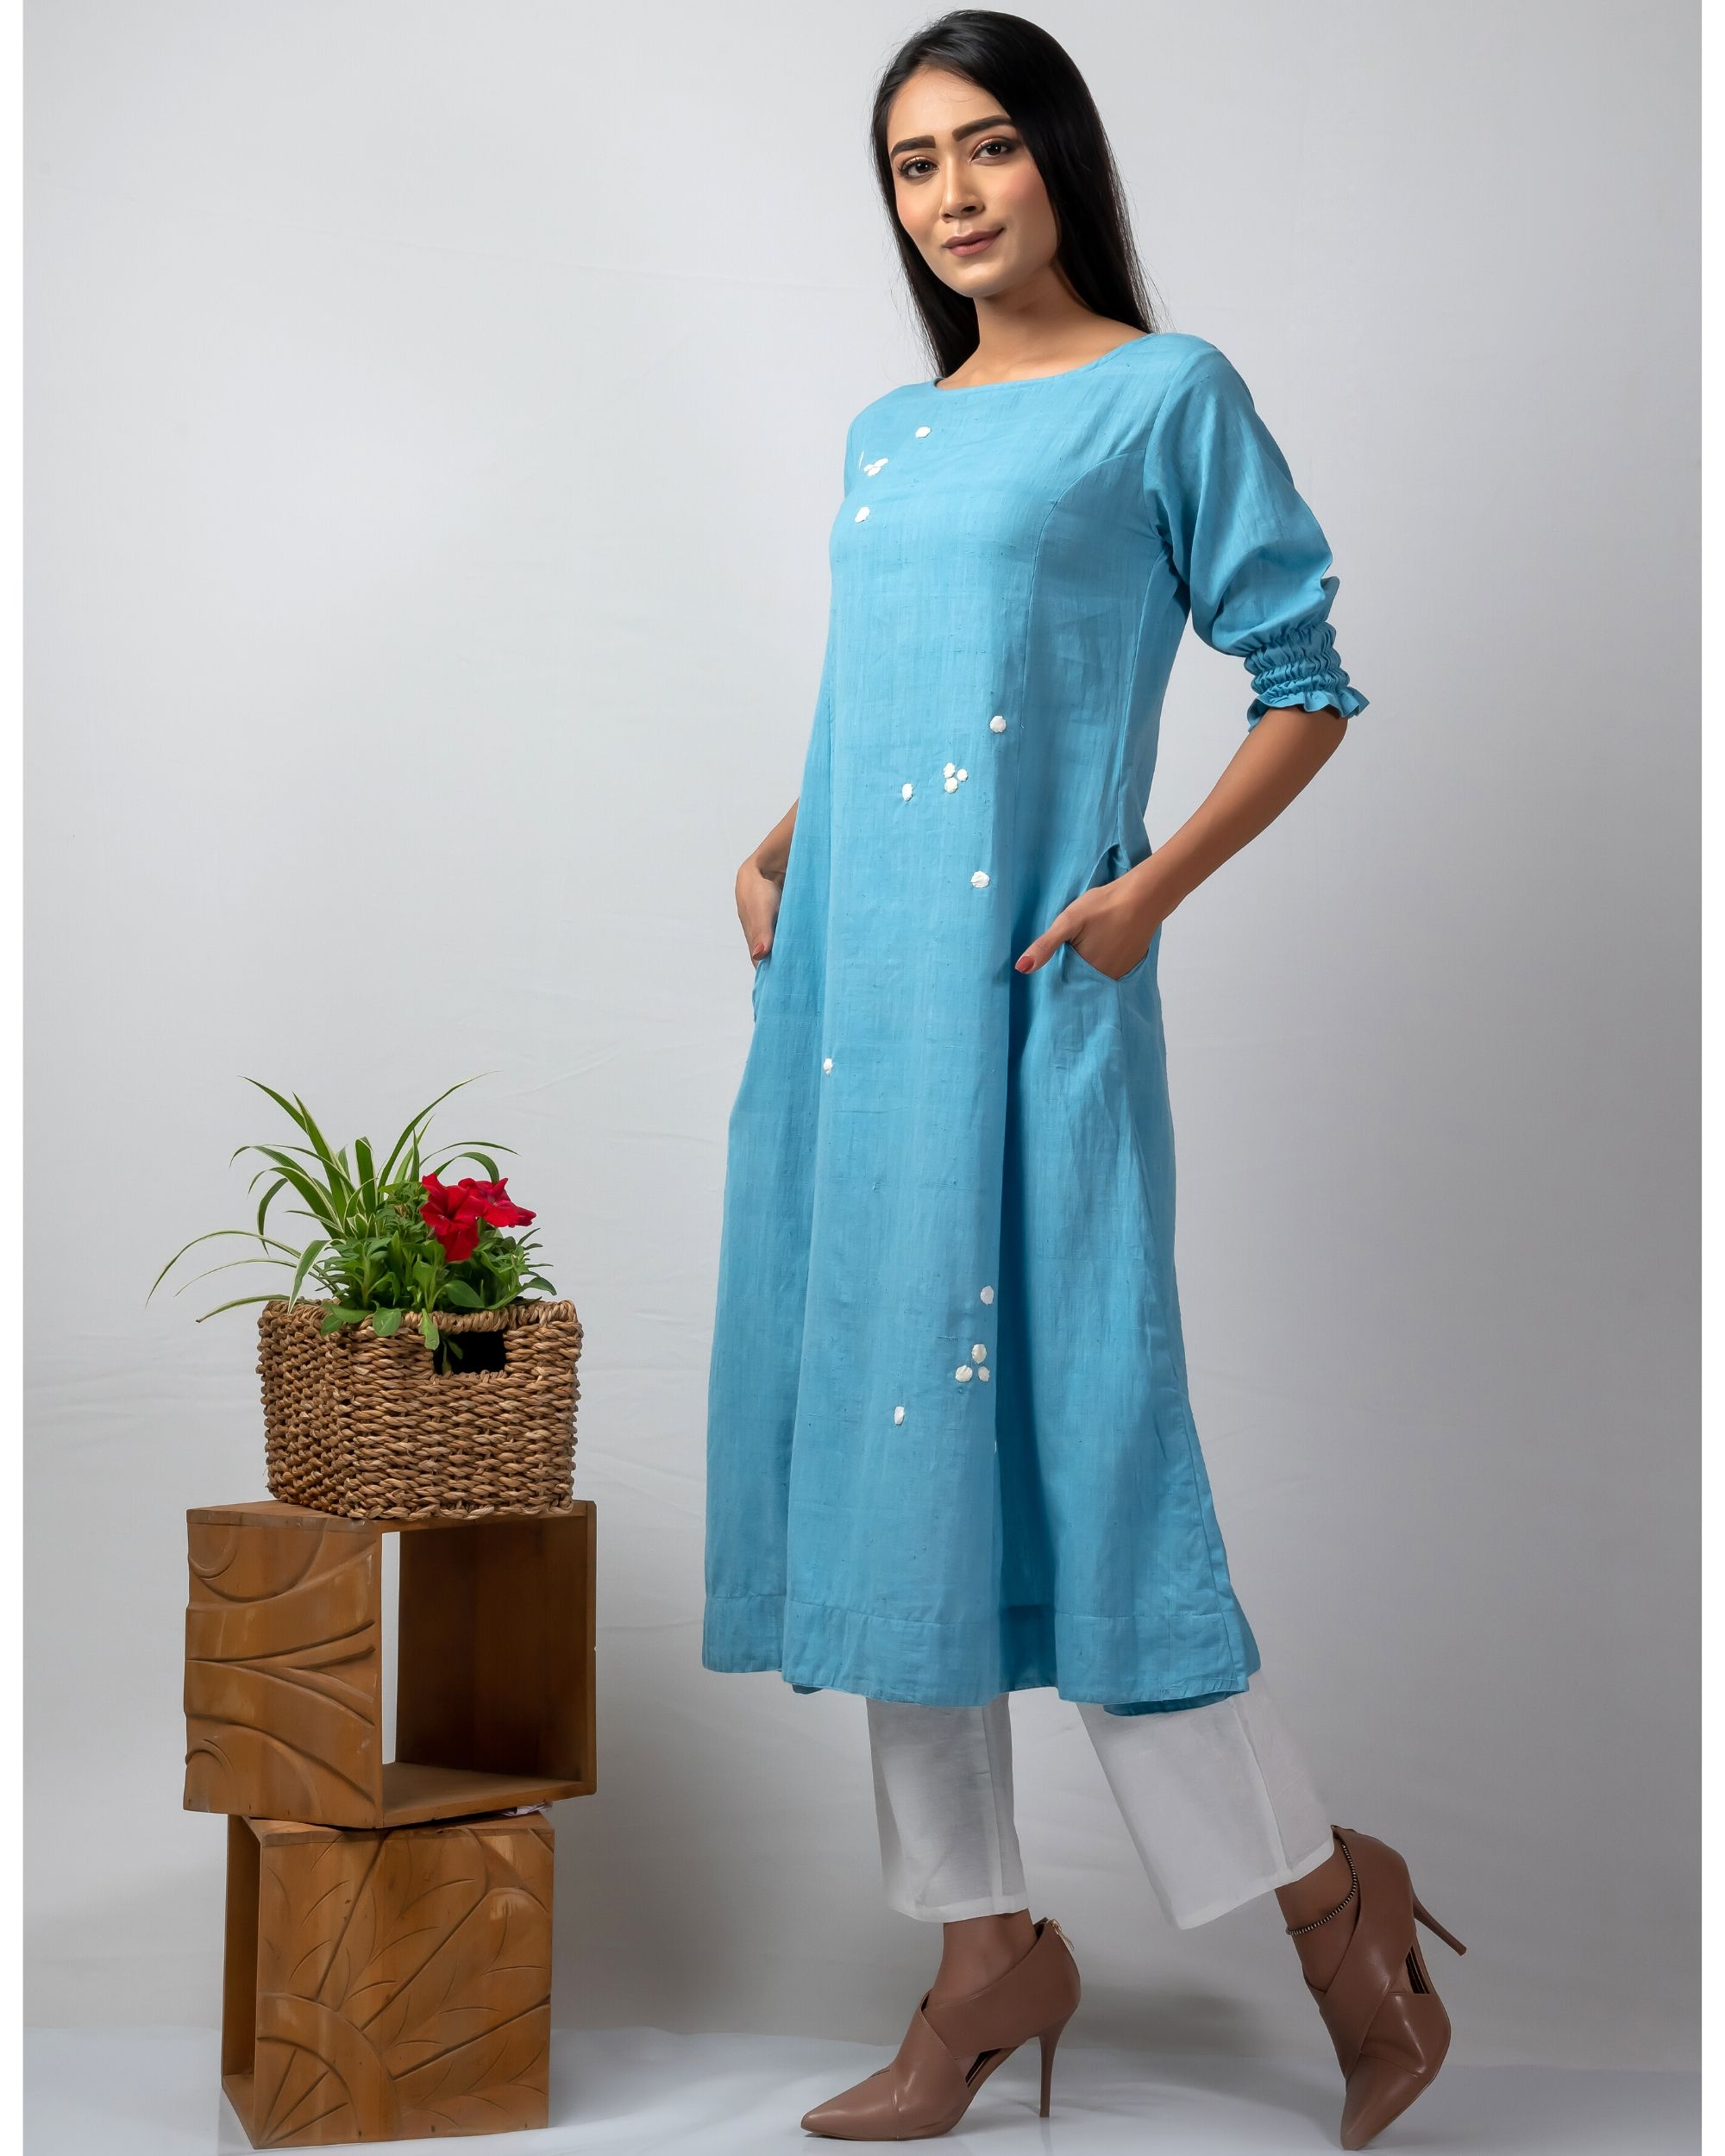 Blue polka applique kurta